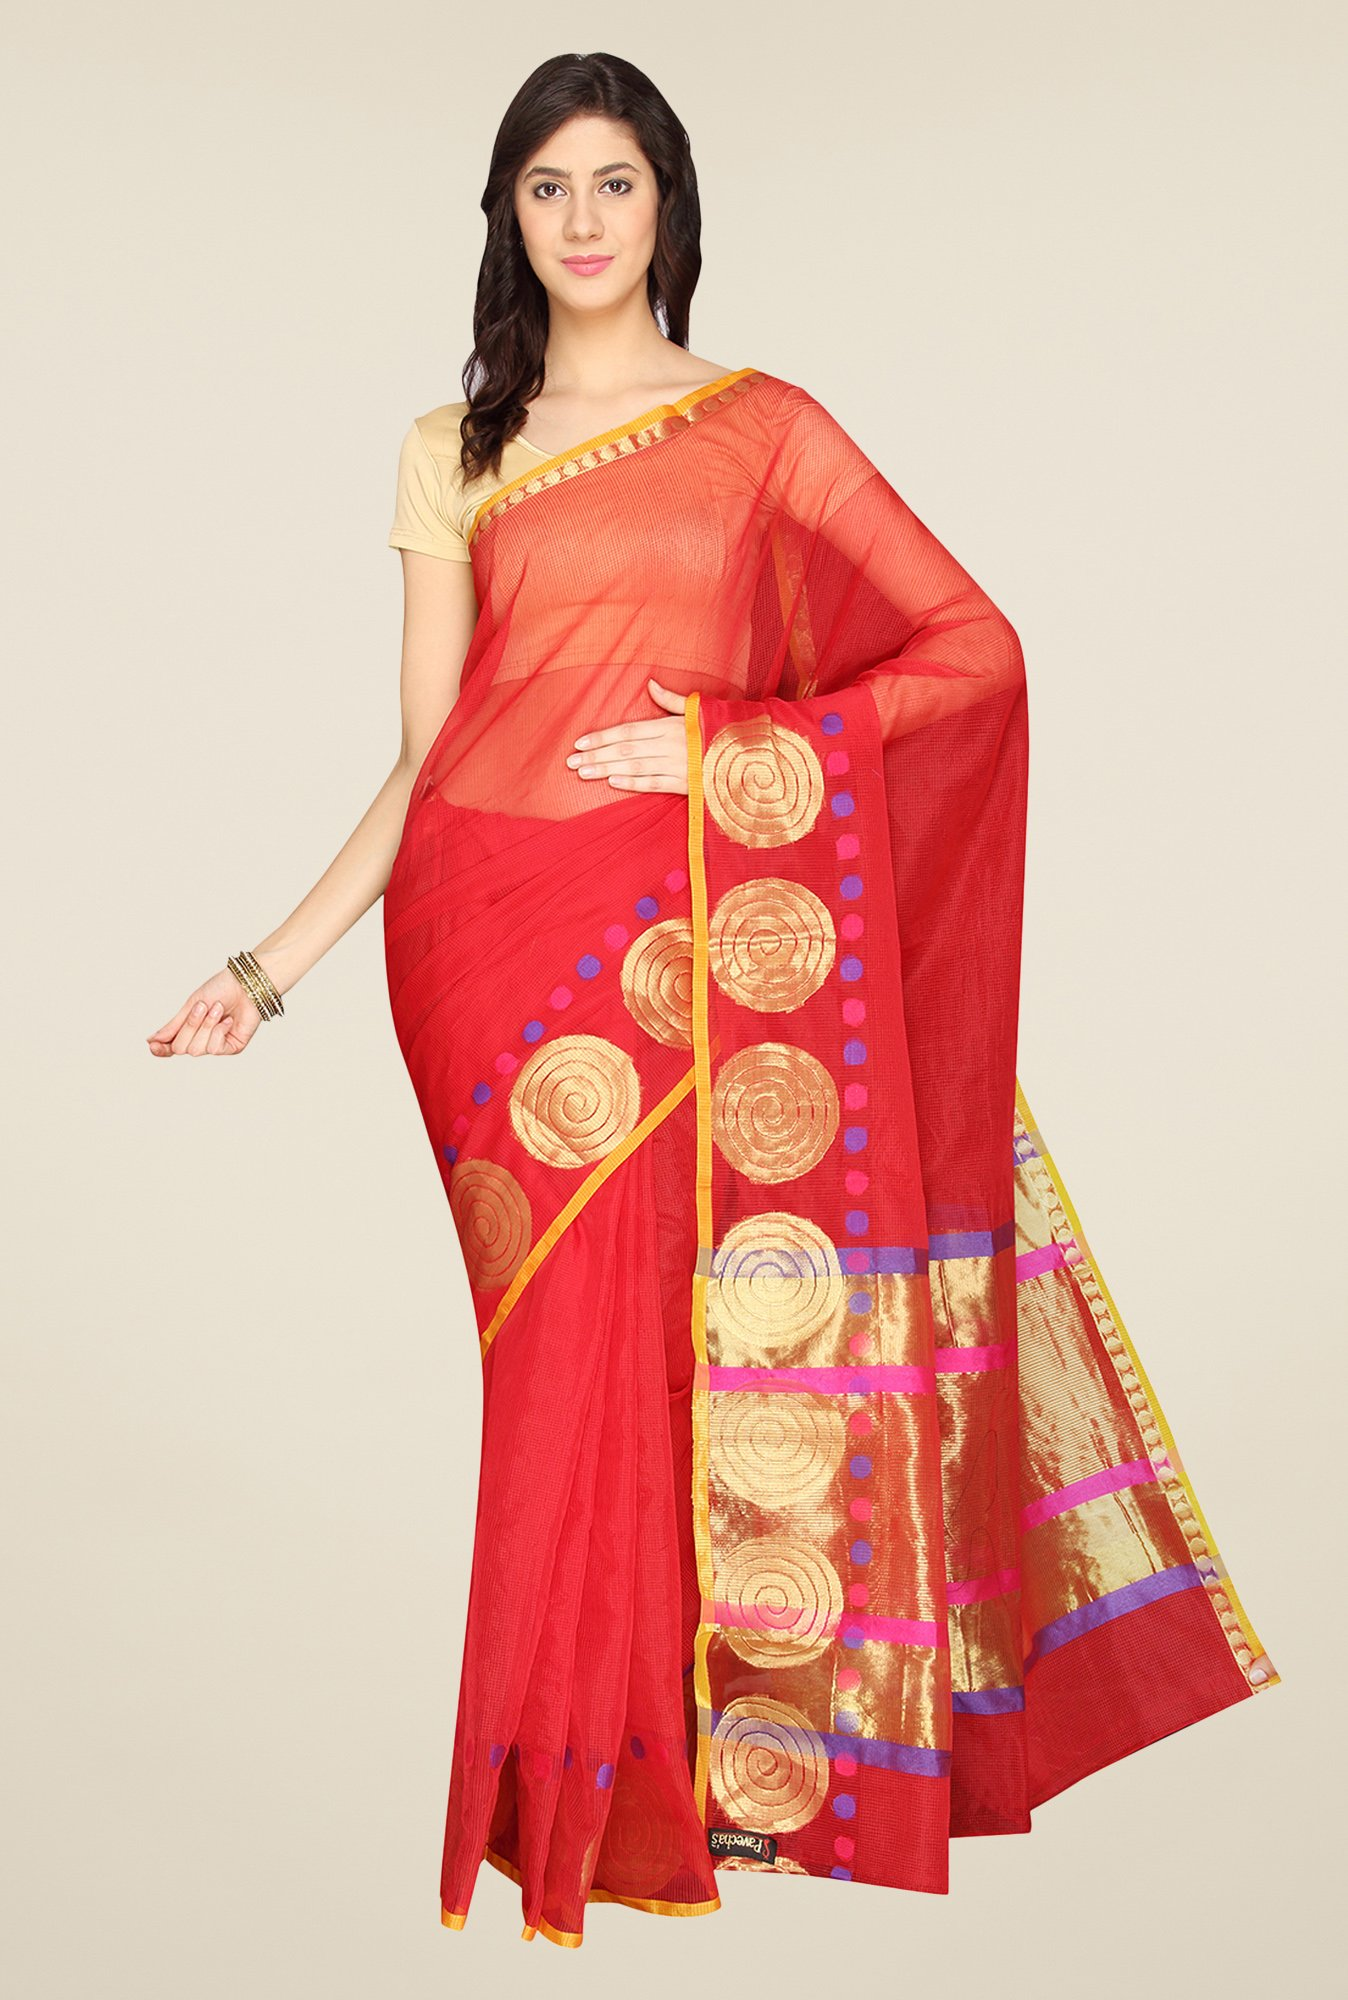 Pavecha's Red Banarasi Kota Cotton Saree